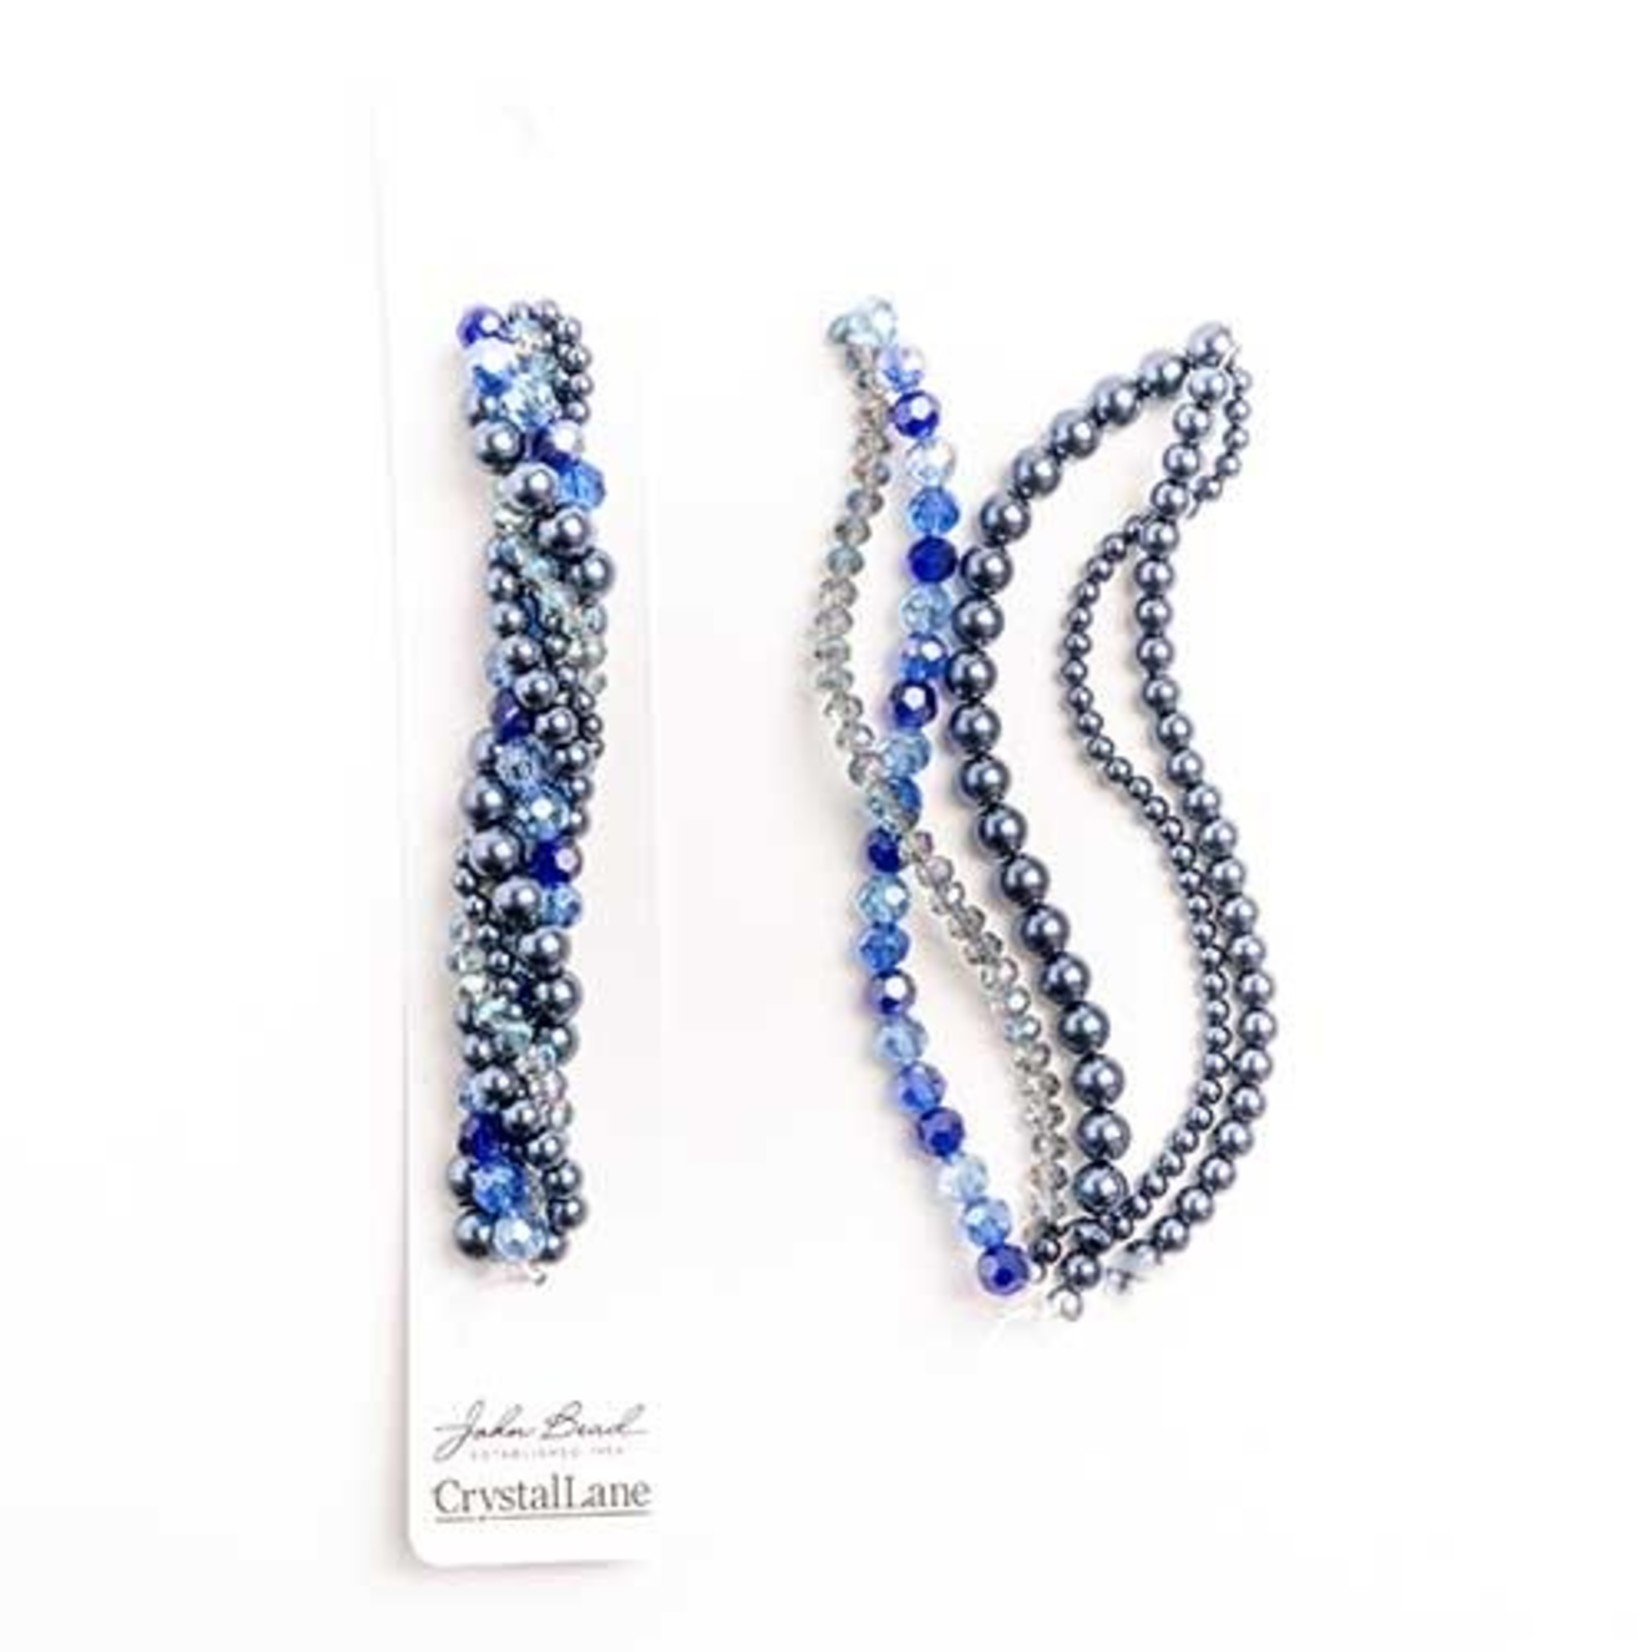 Crystal Lane Twisted Bead Strands Forget Me Knot